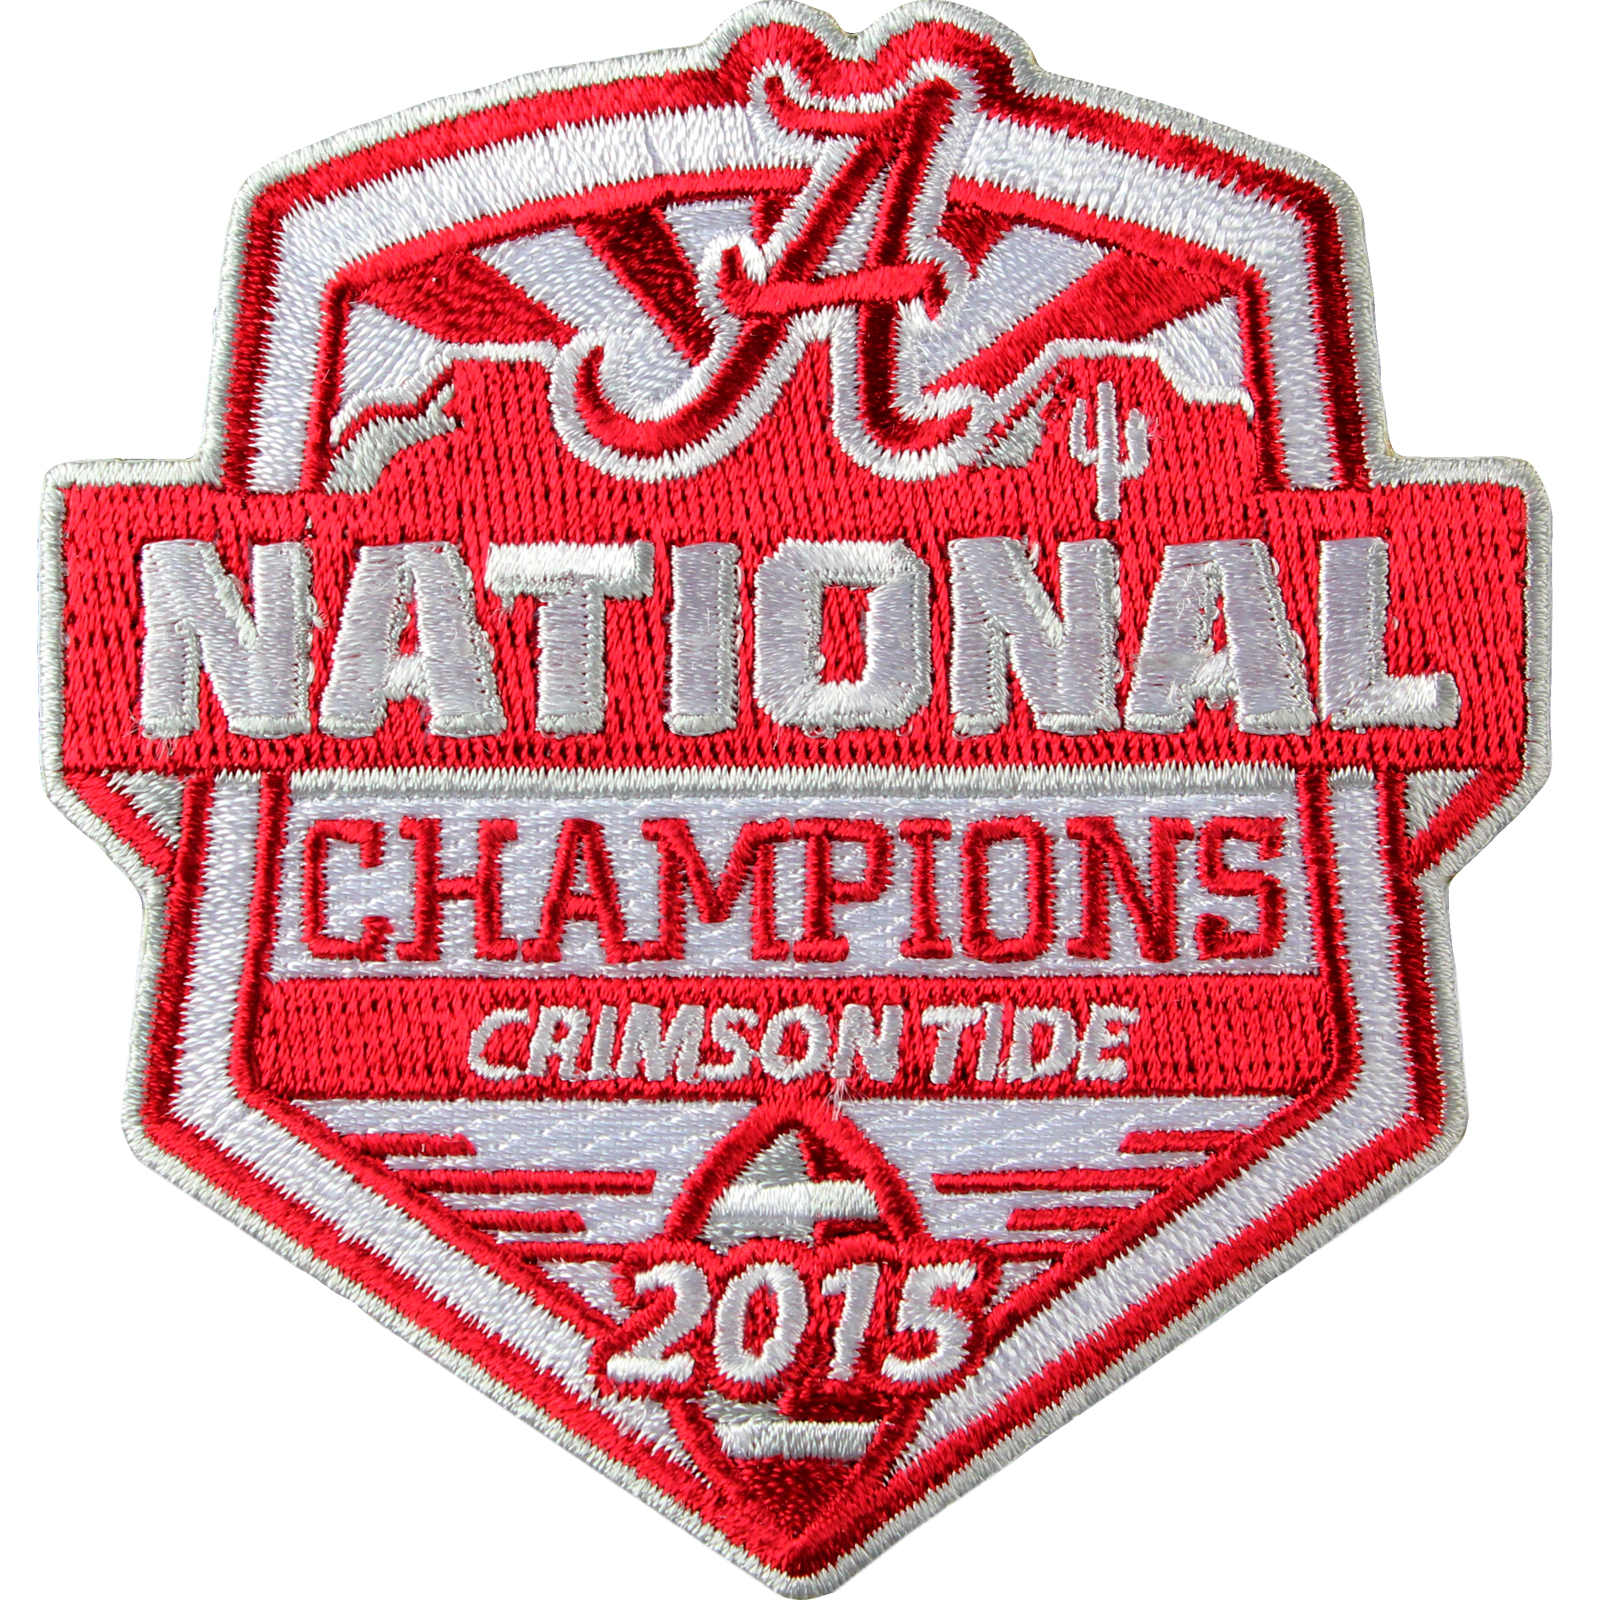 2015 Alabama Crimson Tide 2016 College National Champions Game Jersey Patch NCAA